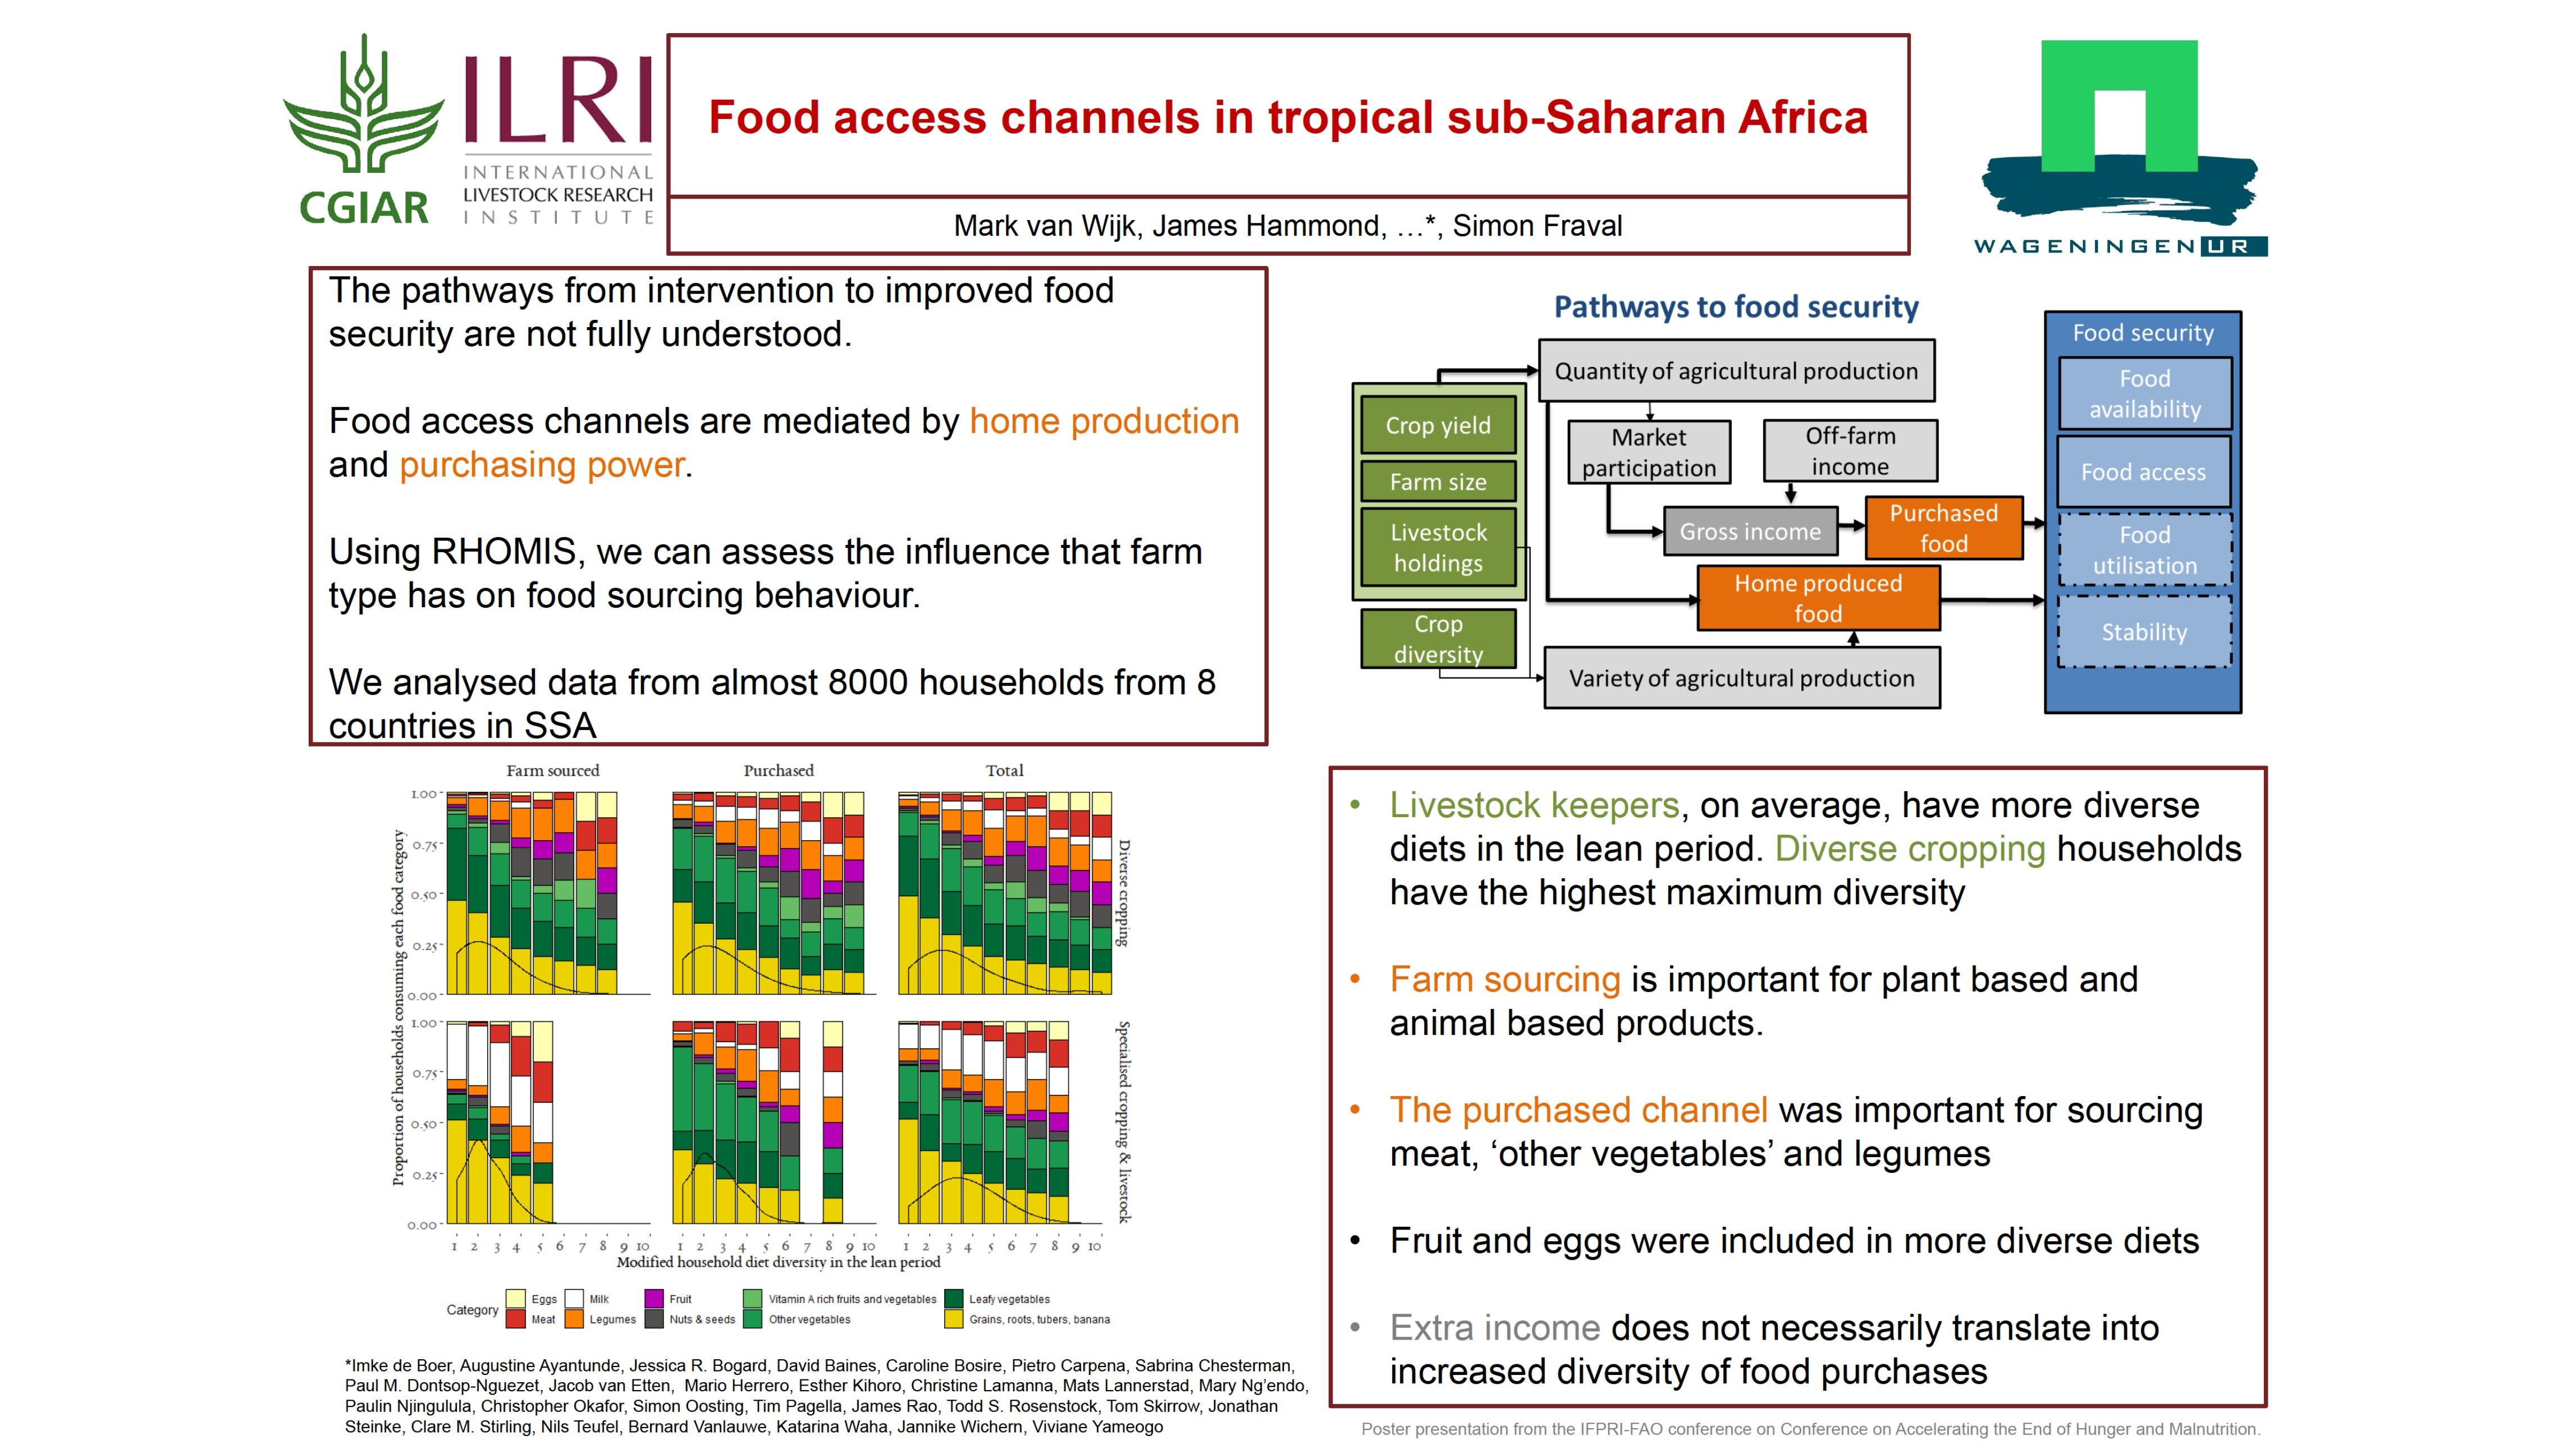 Food Access Channels in Tropical Sub-Saharan Africa